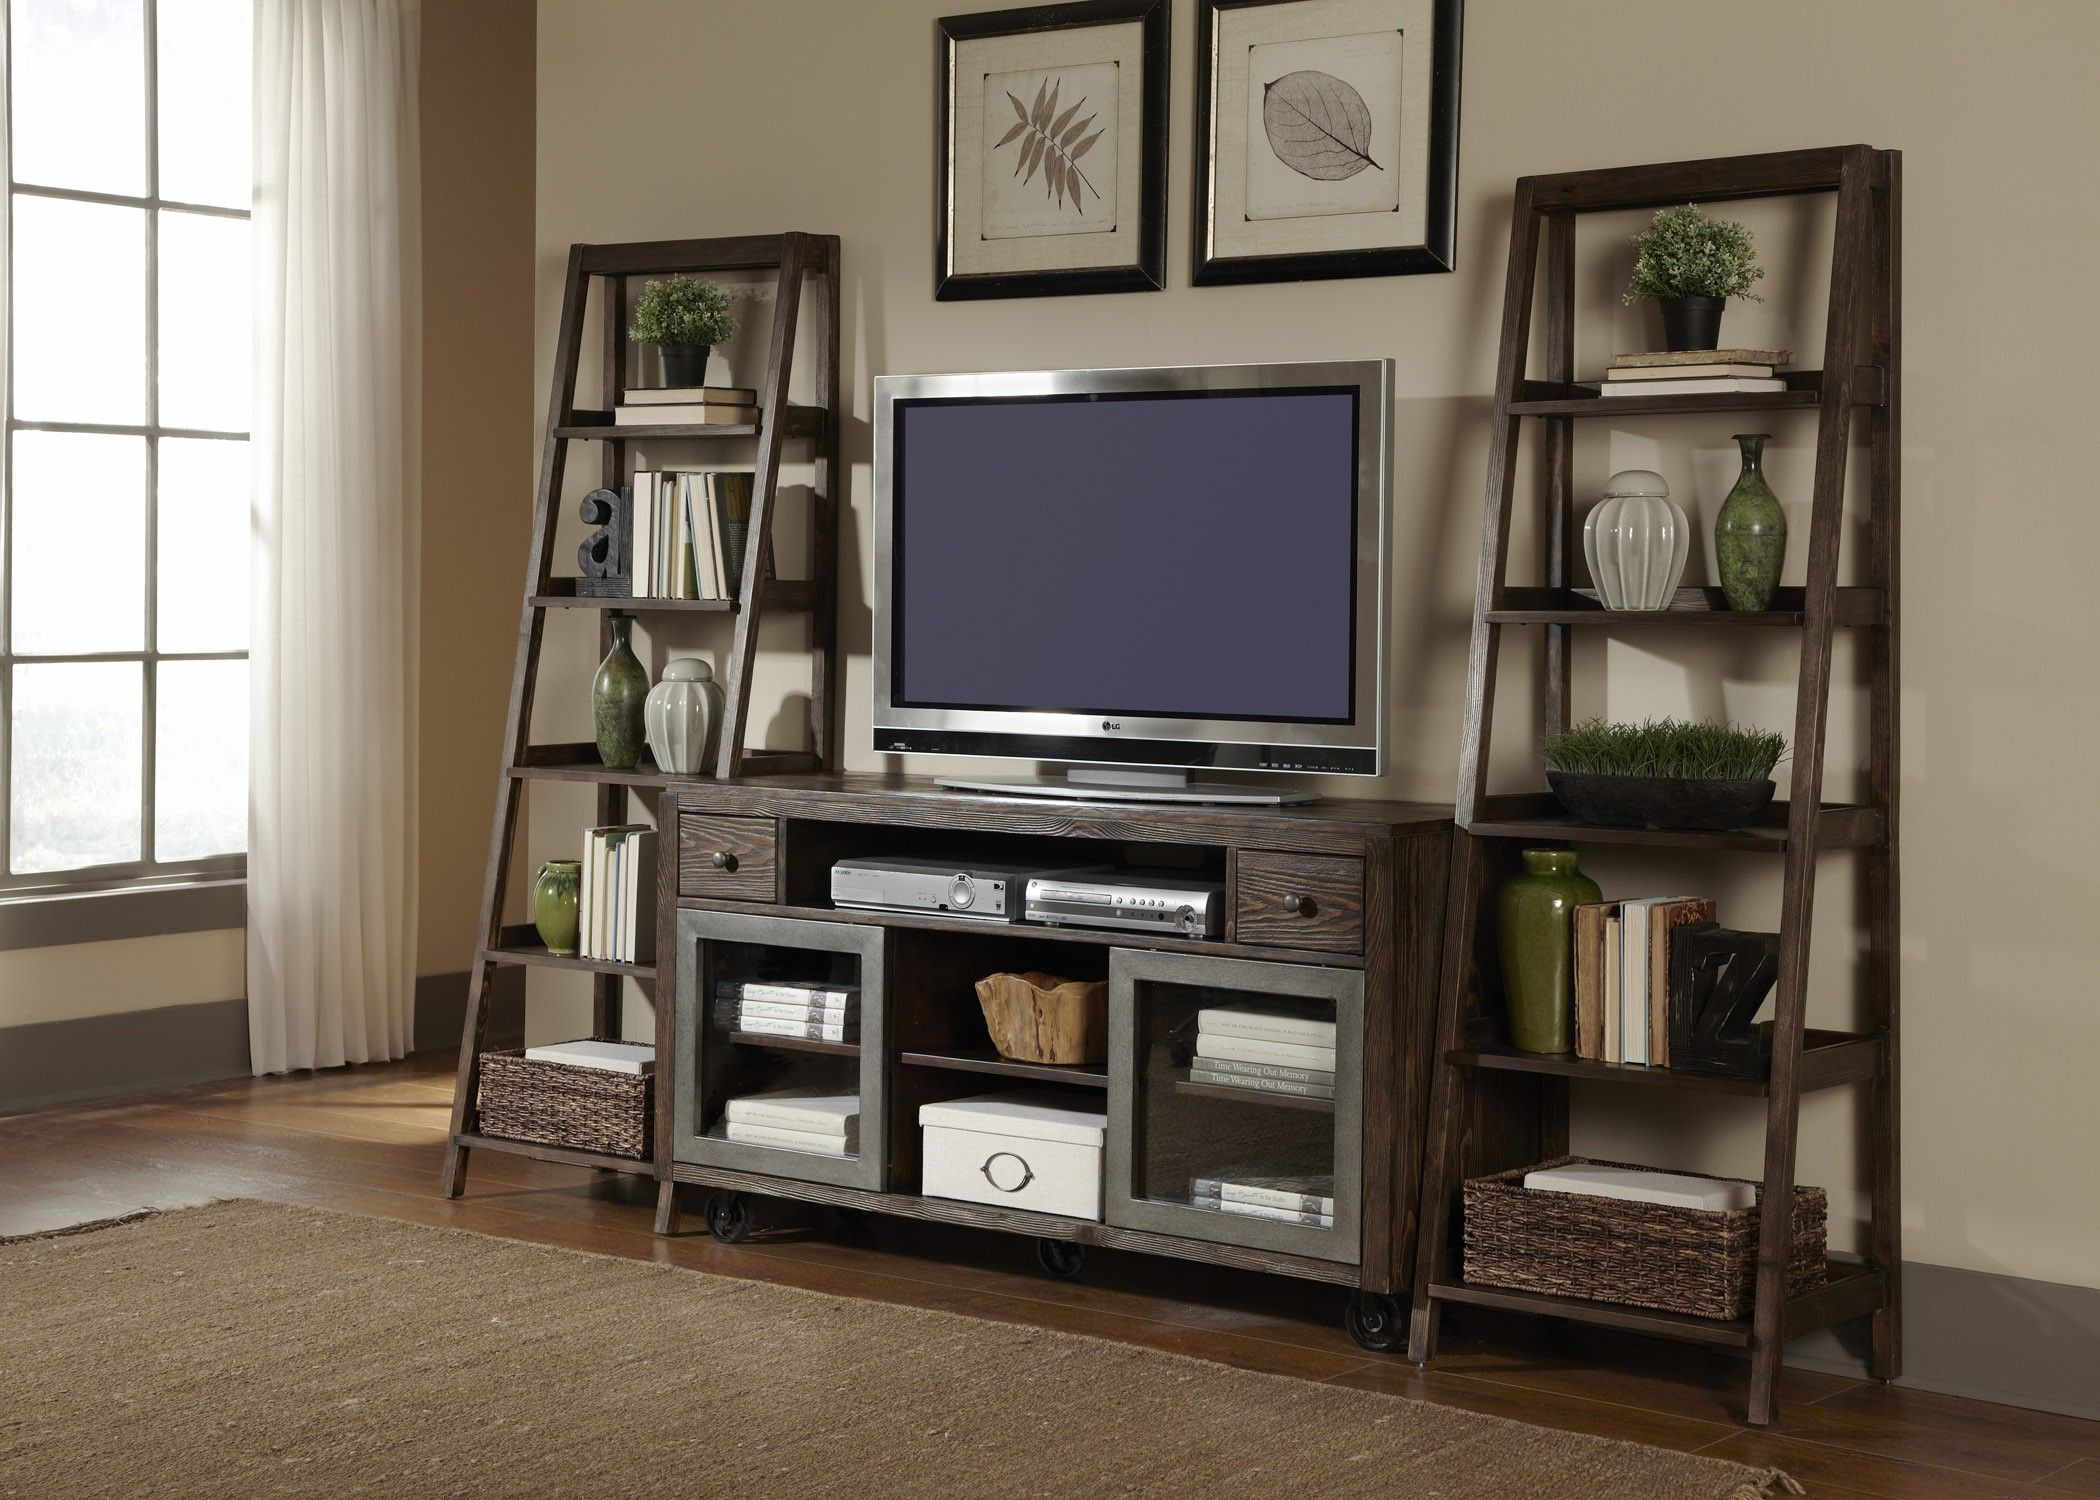 Leaning Bookshelf Entertainment Center